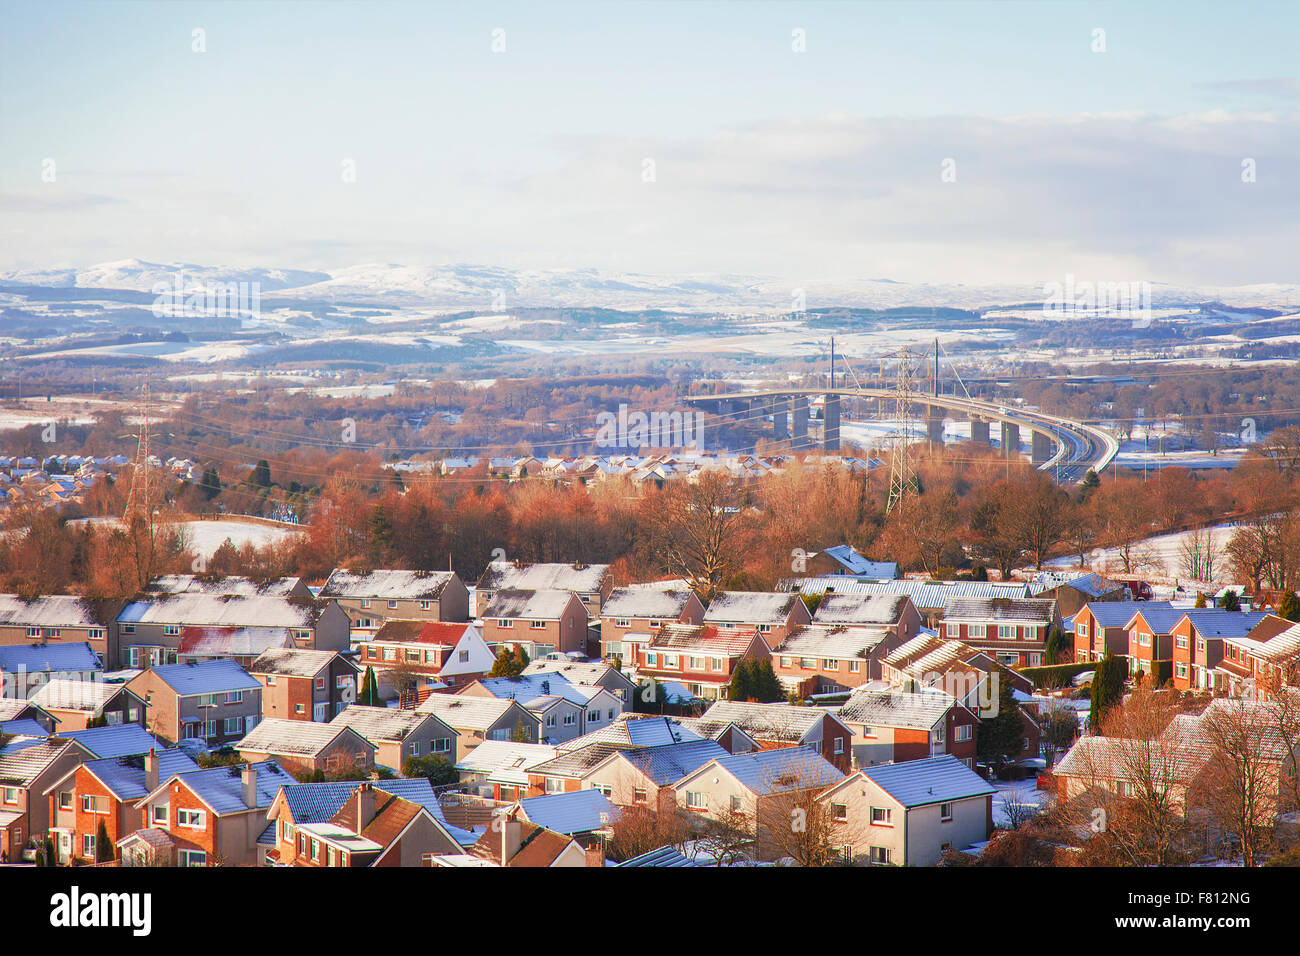 Image of the scottish town of Clydebank with the Erskine bridge. Glasgow,Scotland. - Stock Image